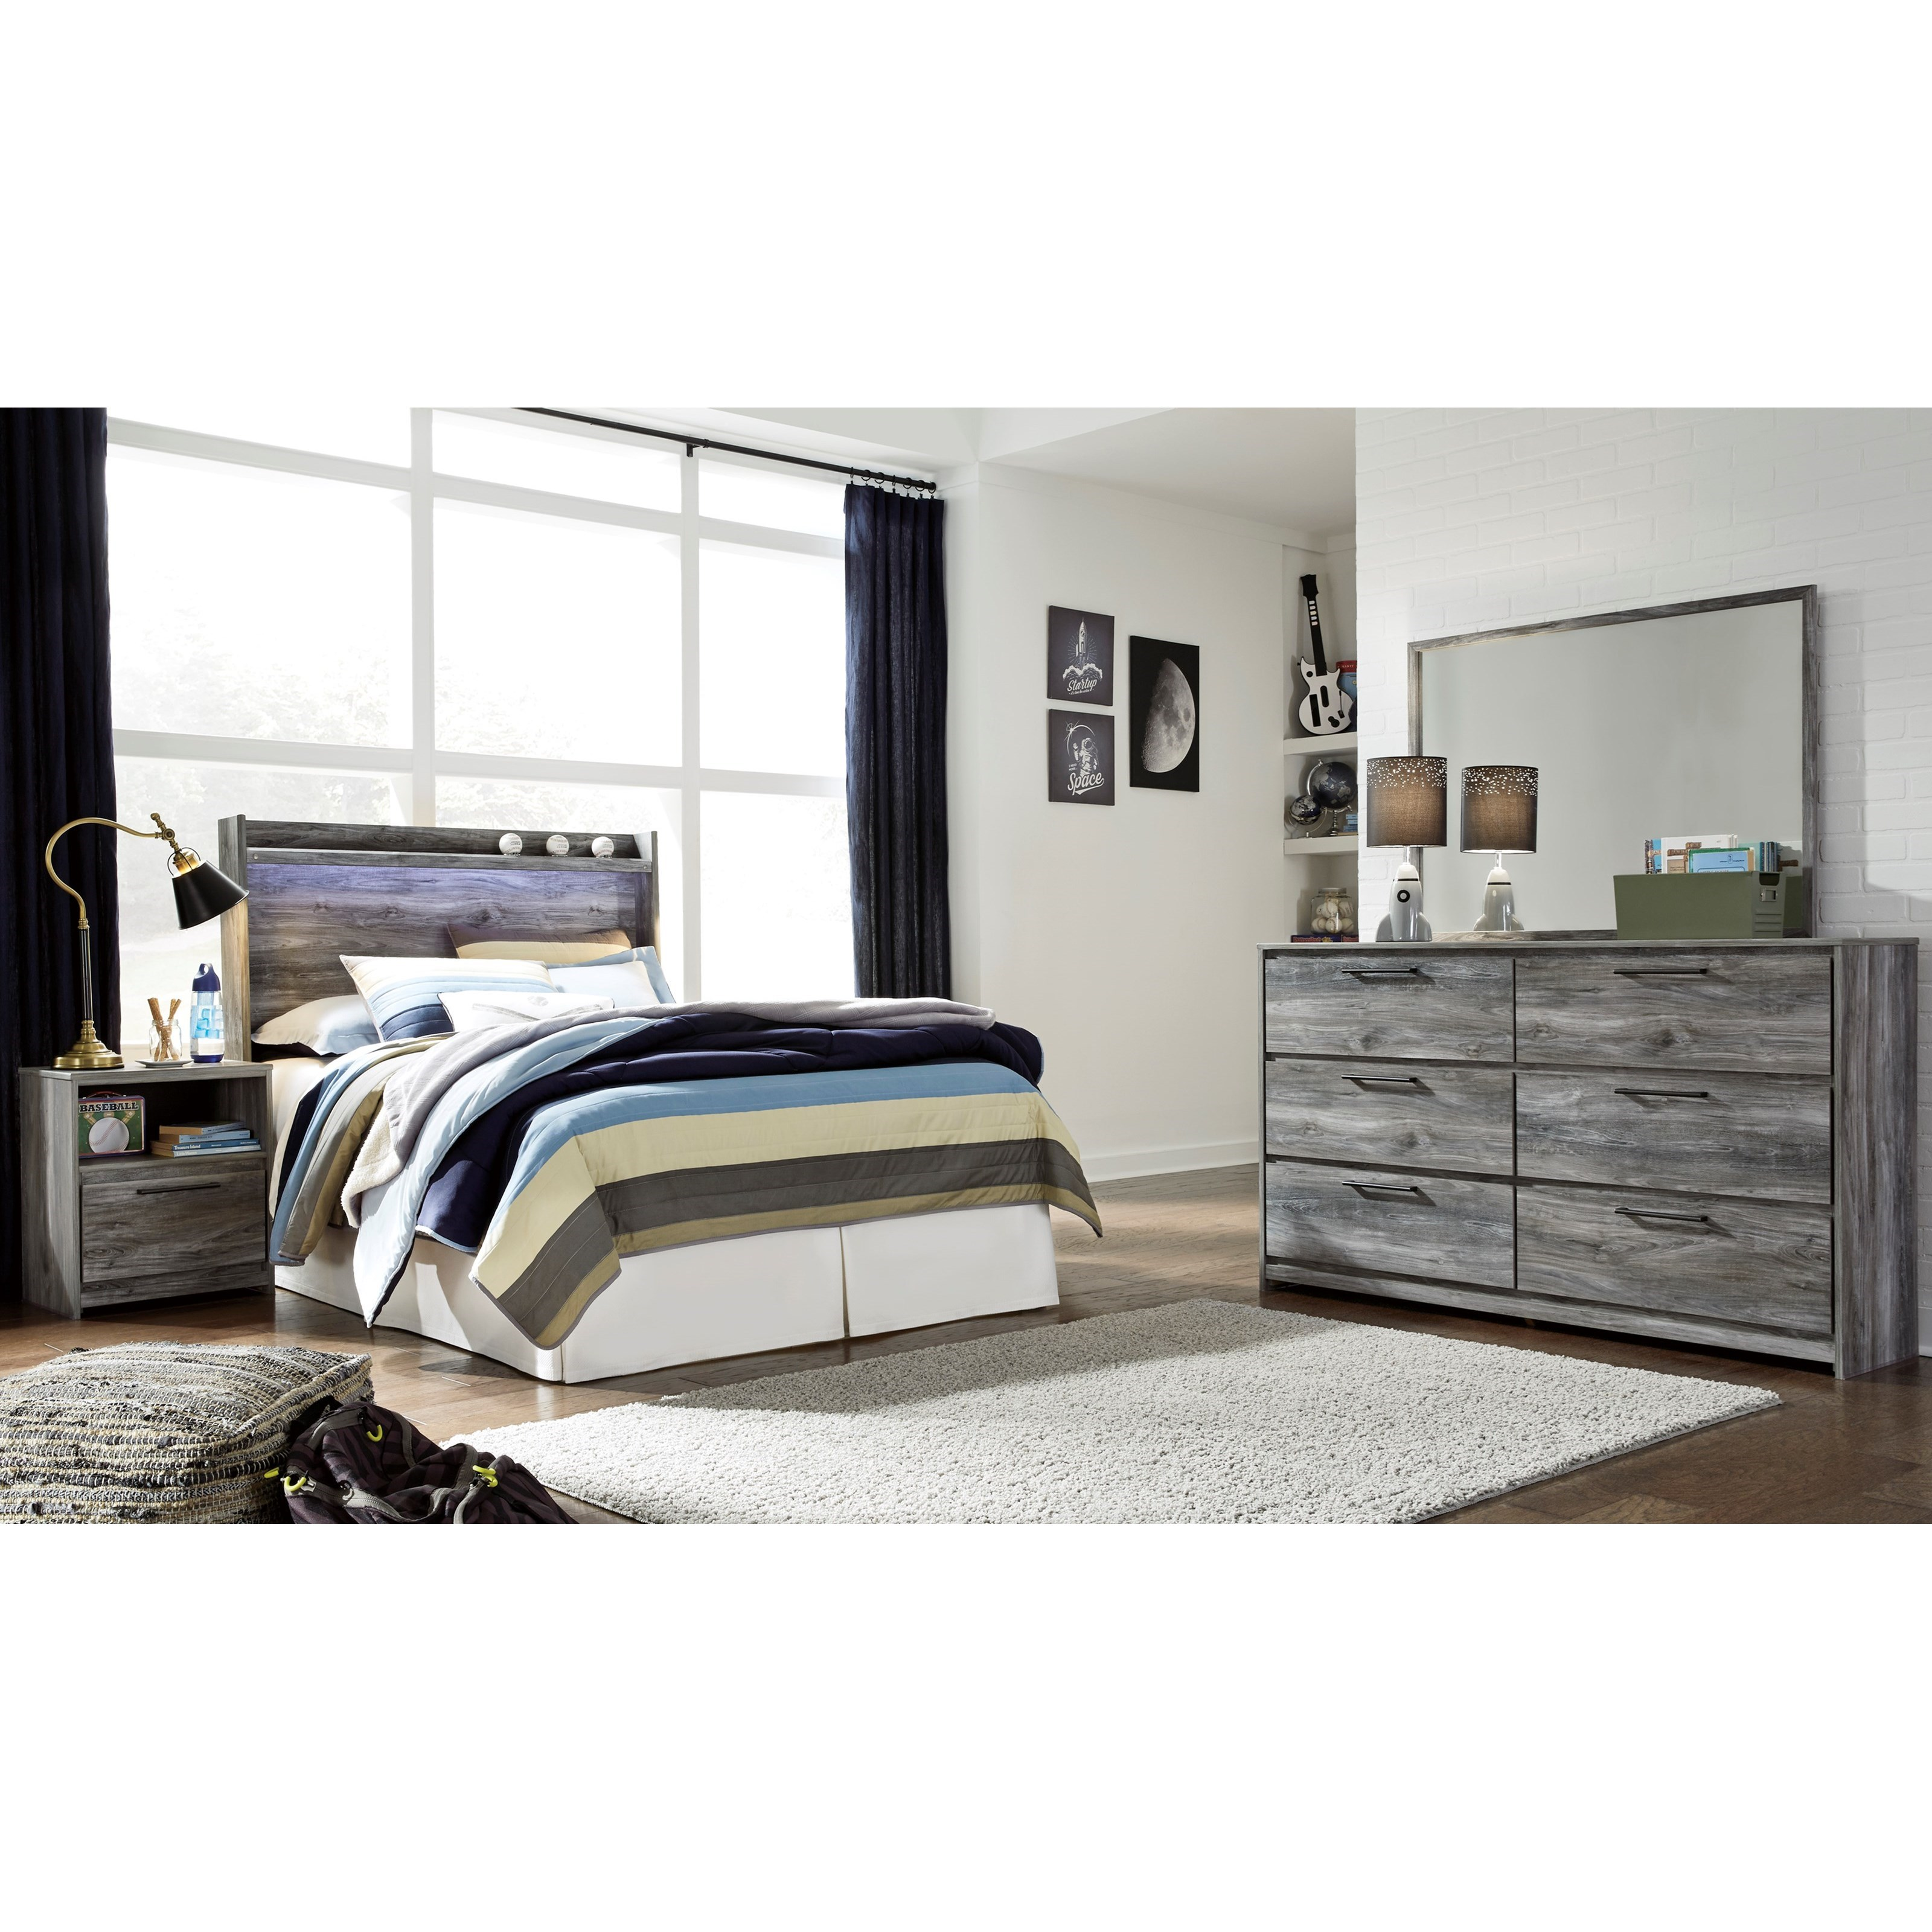 Baystorm Full Bedroom Group by Signature Design by Ashley at Northeast Factory Direct